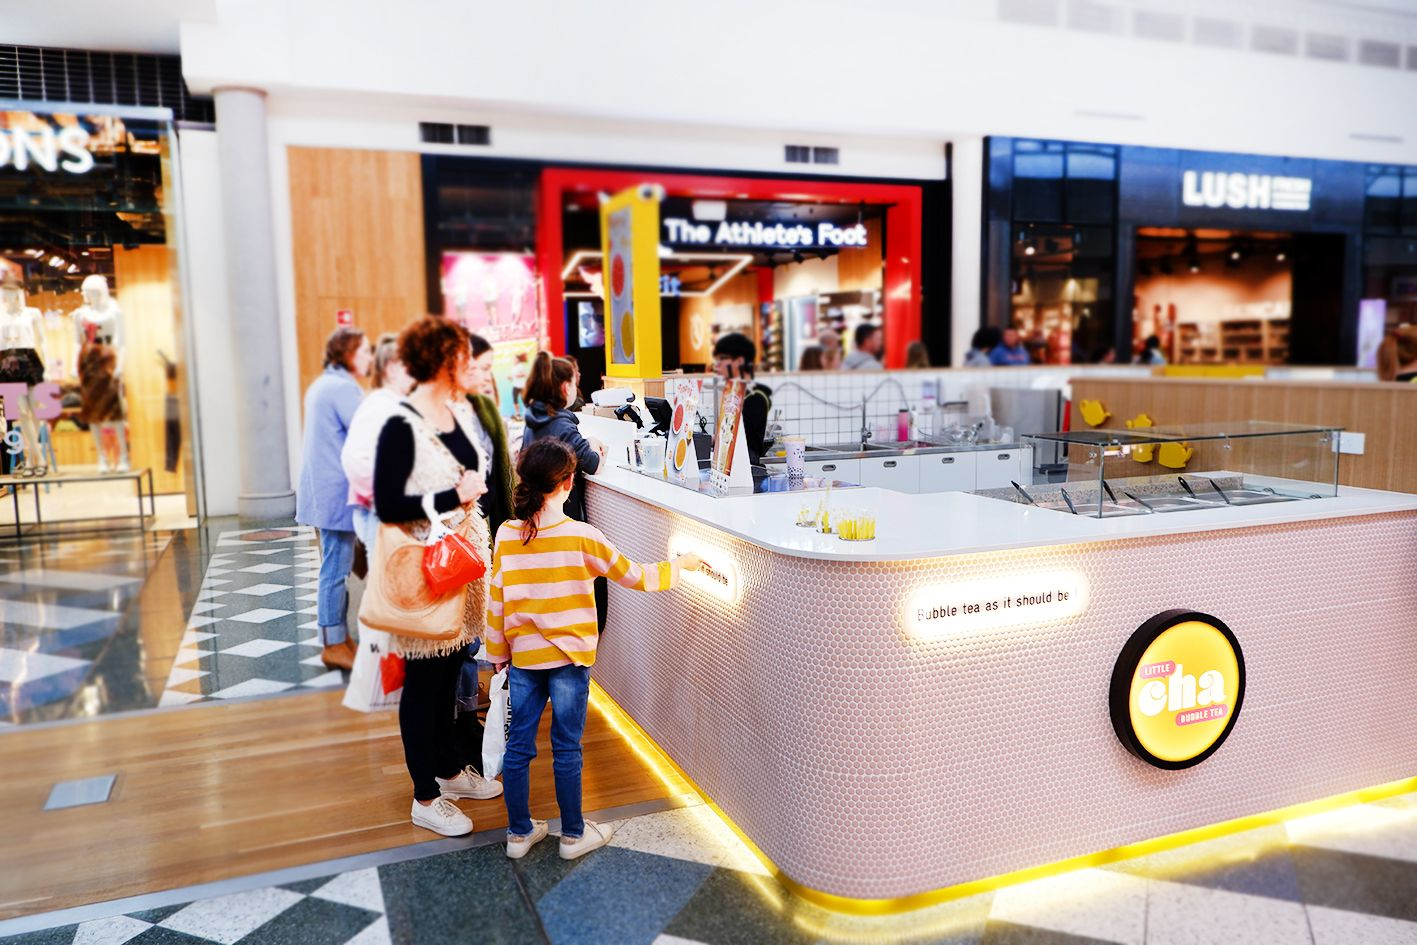 The Little Cha expansion boosts bubble tea in Melbourne | Inside Franchise Business